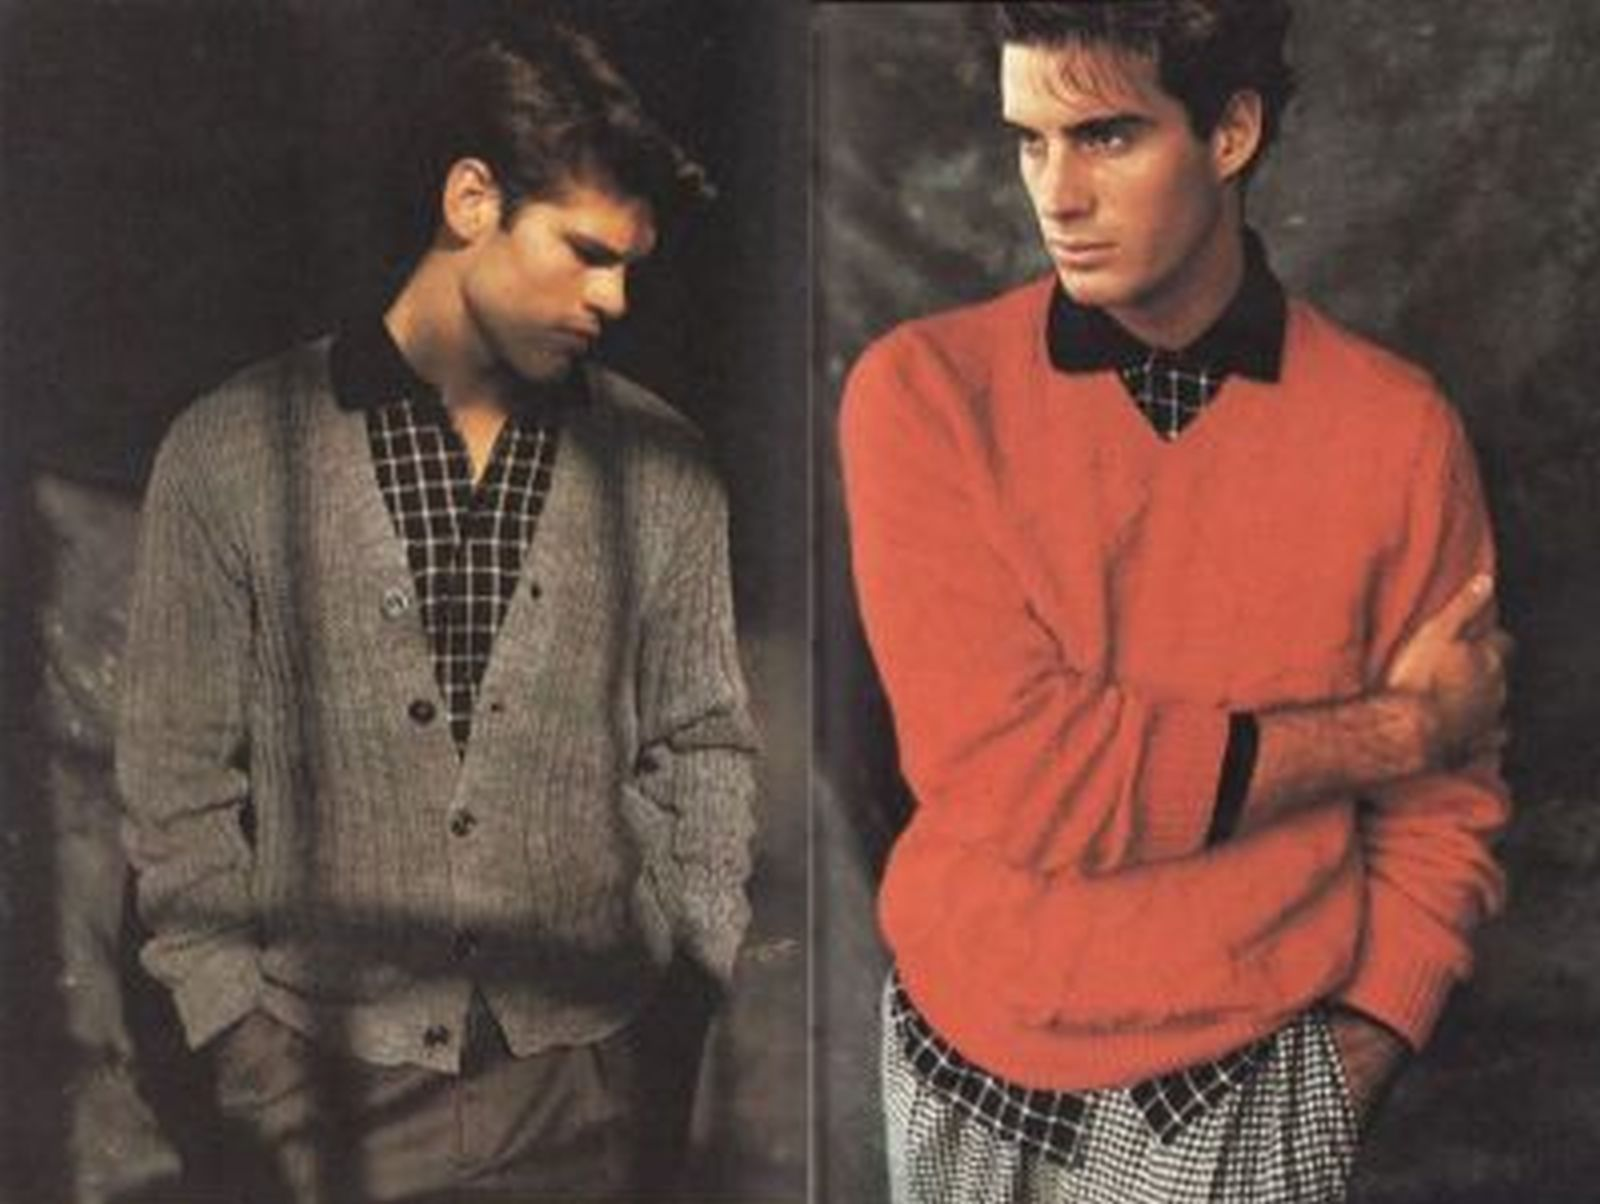 Vtg Vogue Mens Knits 25 Designs Tennis Sailing Ski Cricket Sweaters Patterns image 11